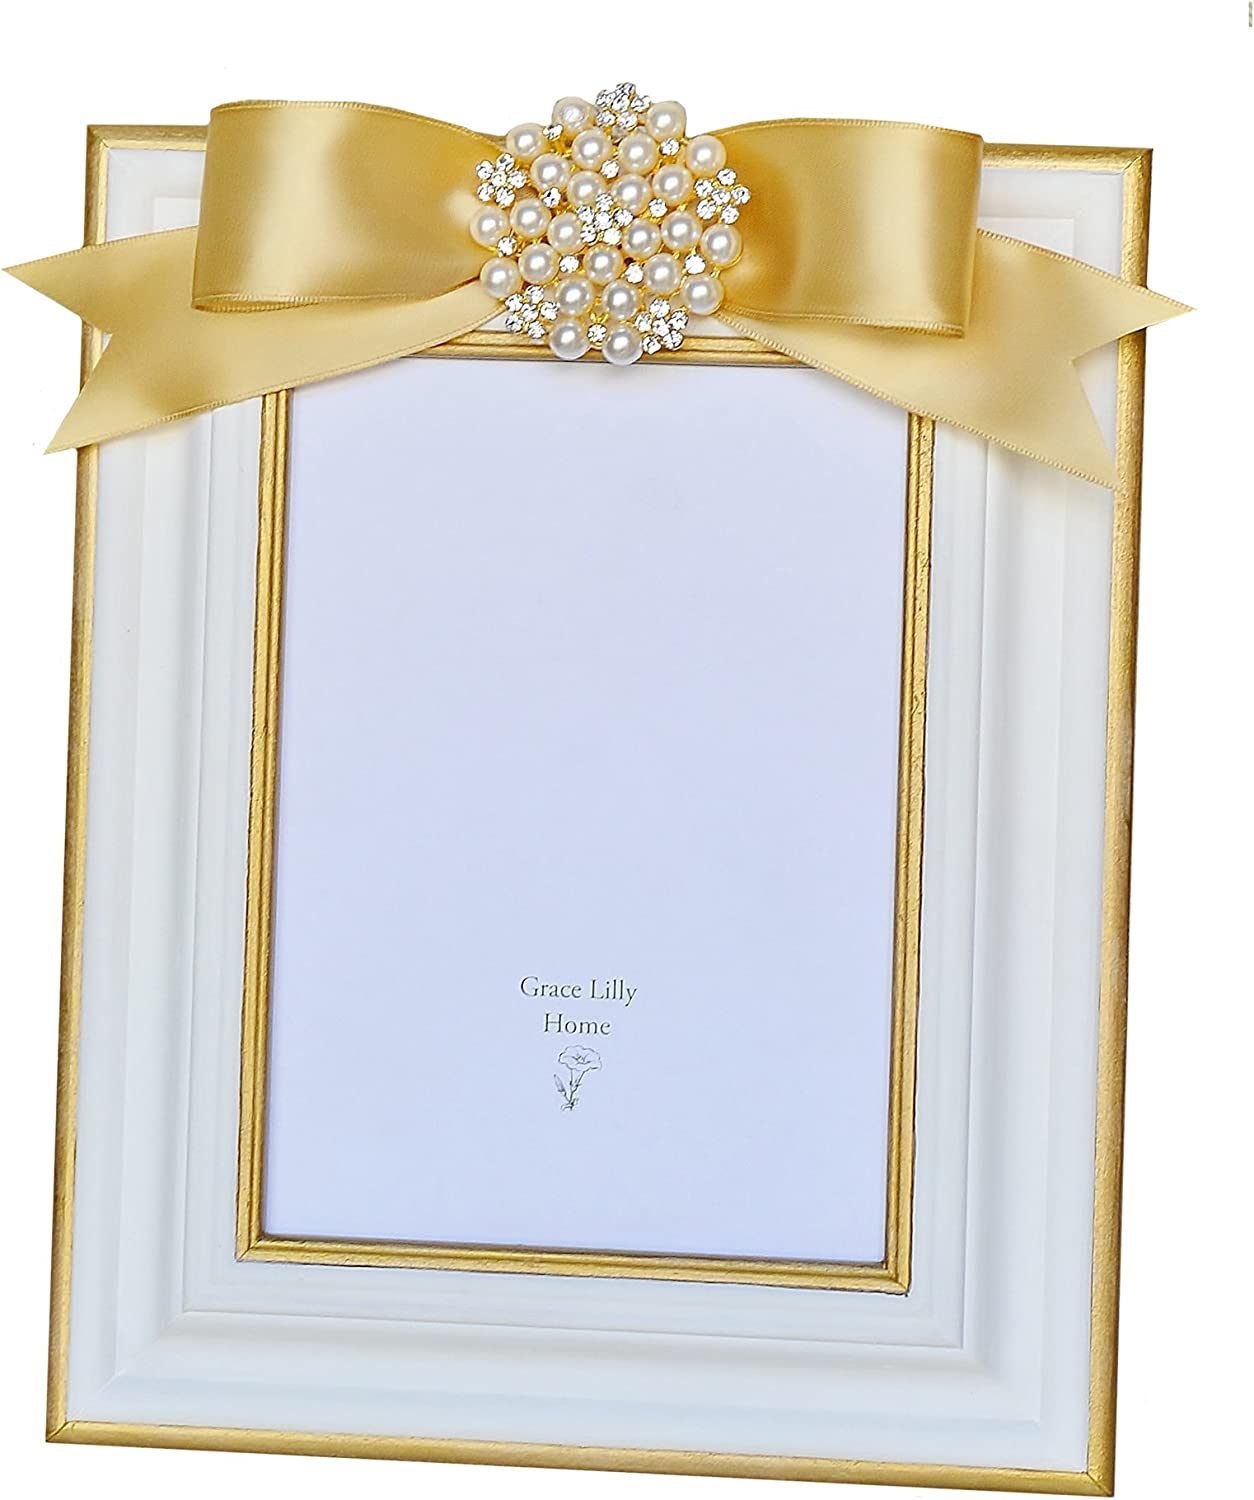 Embellished Picture Frame with Bow